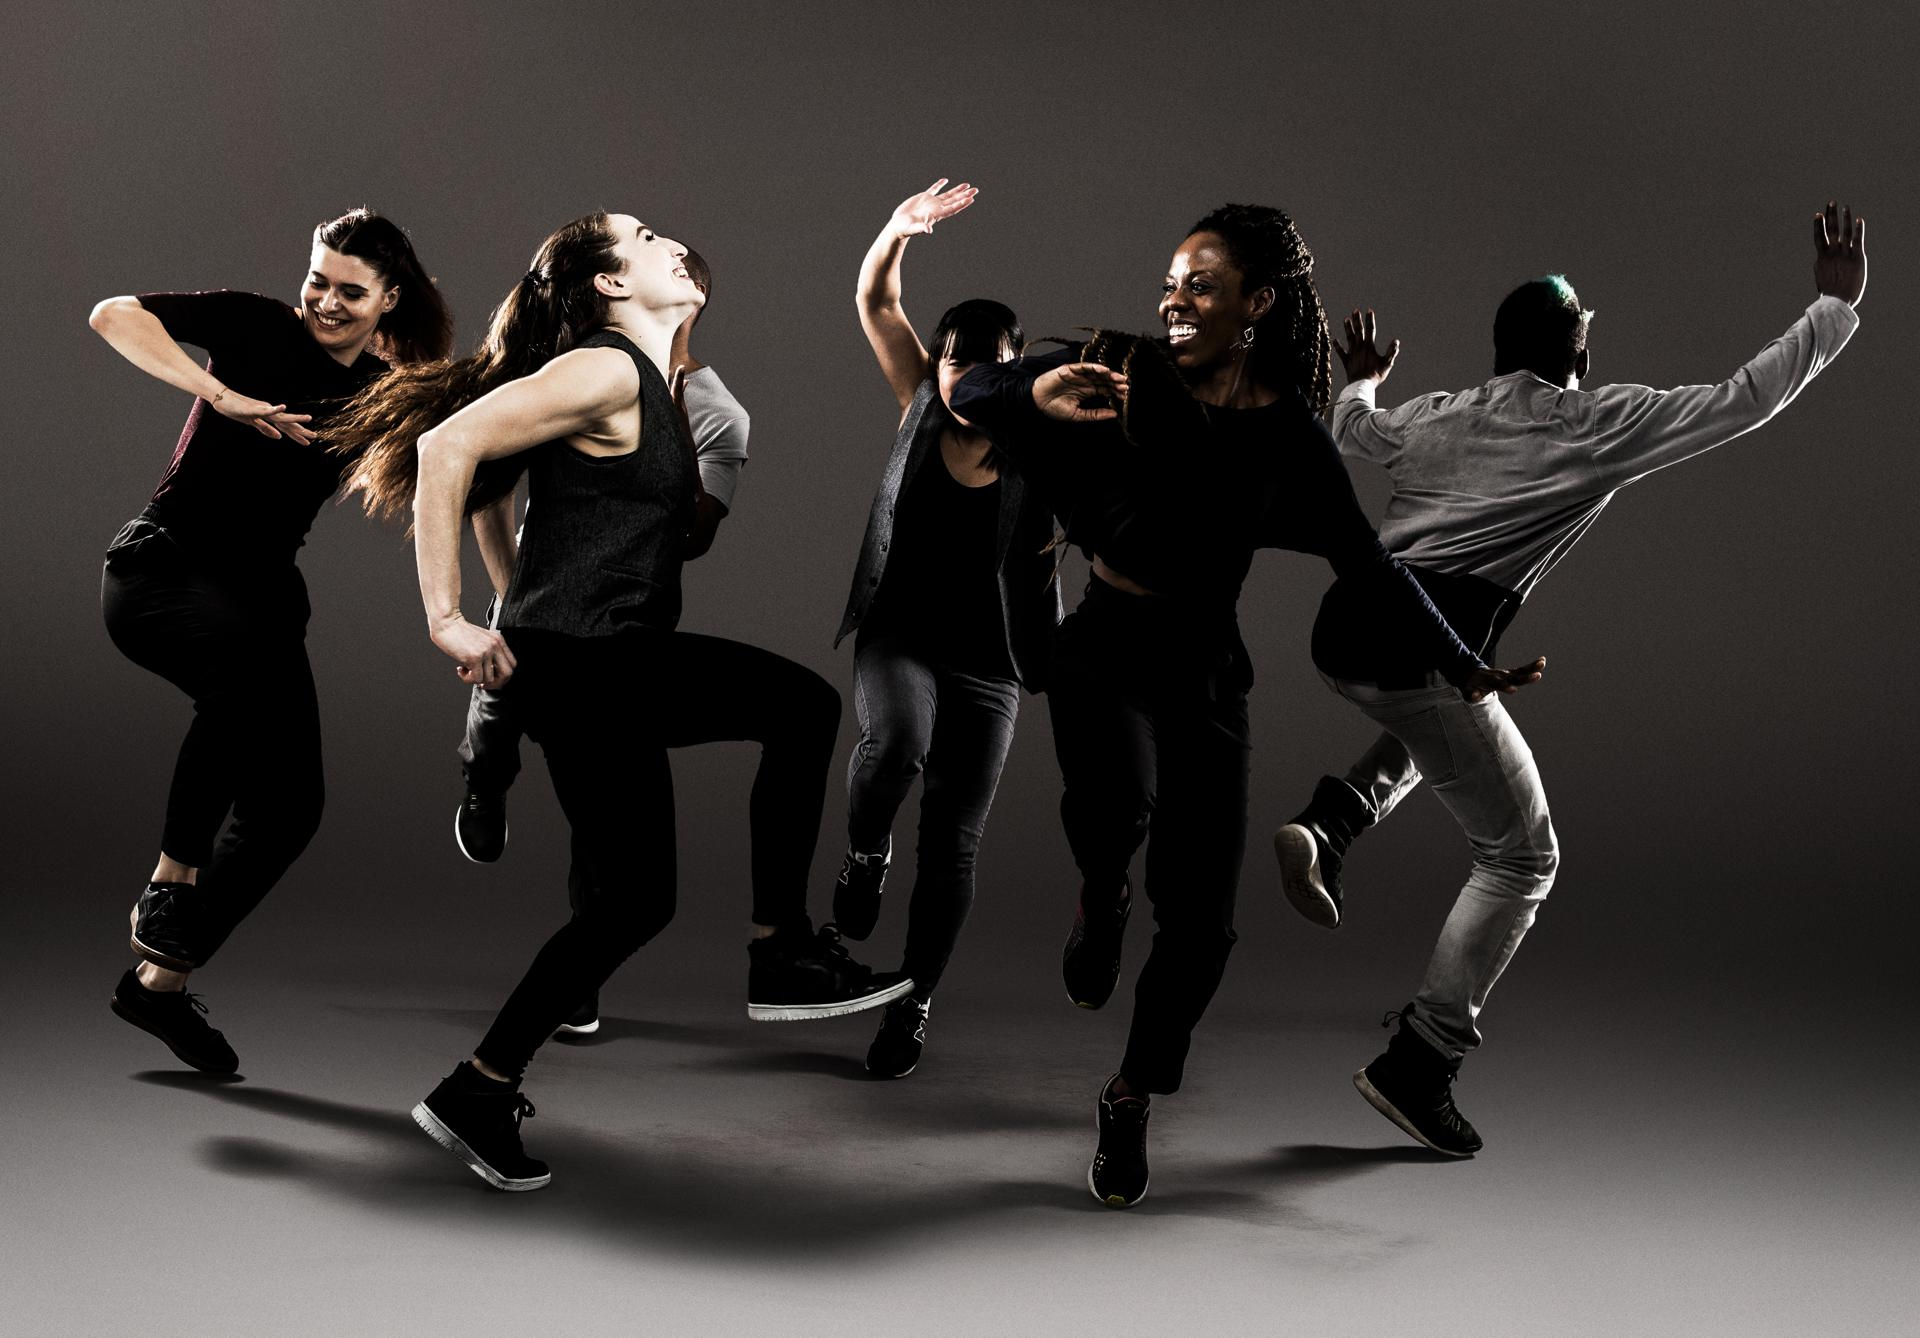 Ephrat Asherie Dance will make its Boston debut Oct. 26-27 at NEC's Plimpton Shattuck Black Box Theatre.